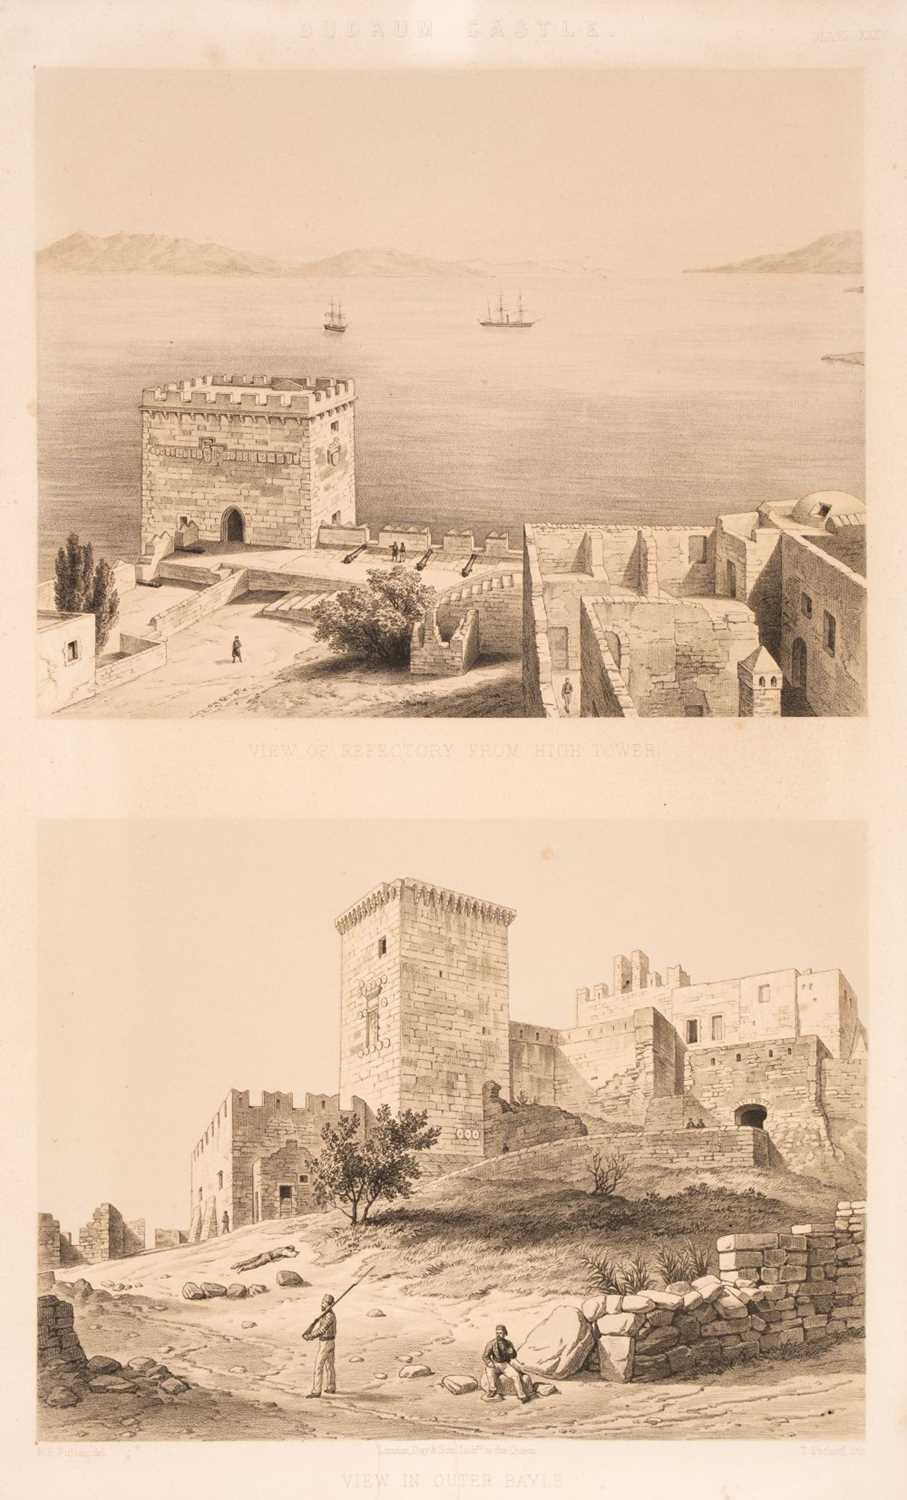 Lot 27 - Newton (Charles). A collection of 31 plates from A History of Discoveries at Halicarnassus ... 1862